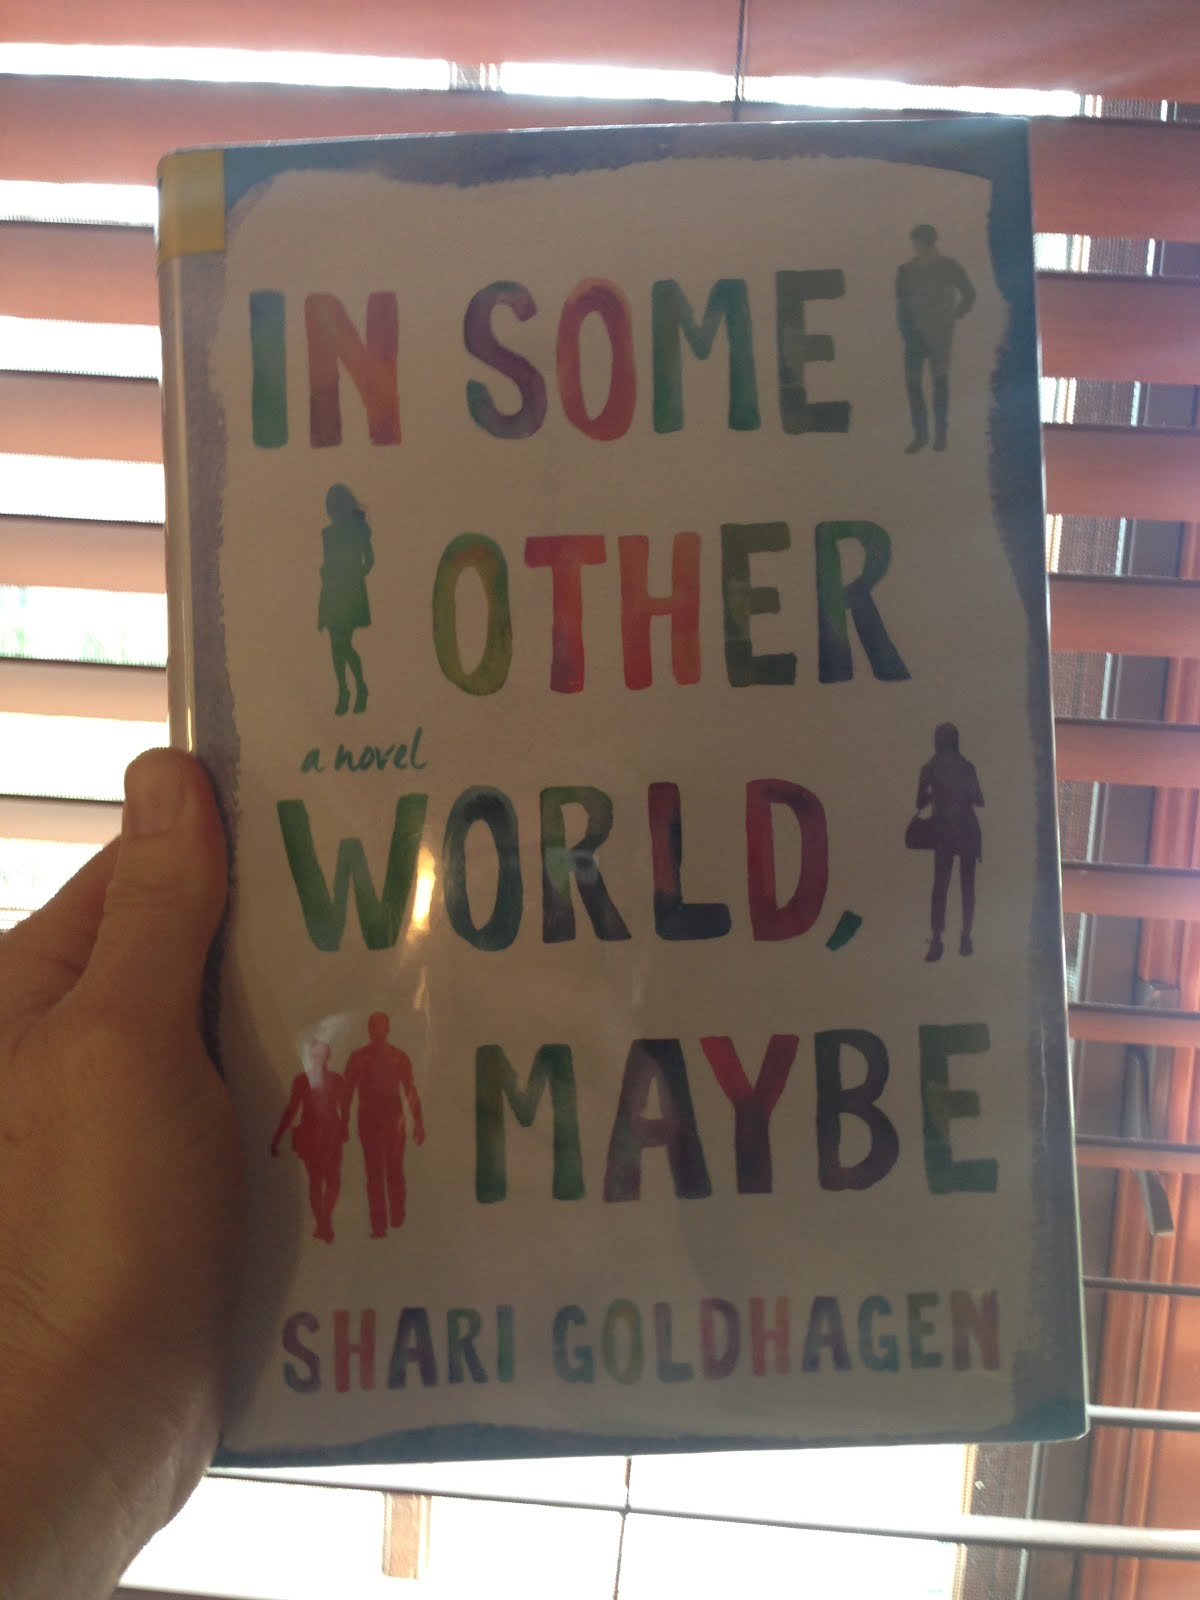 In Some Other World, Maybe -- Shari Goldhagen